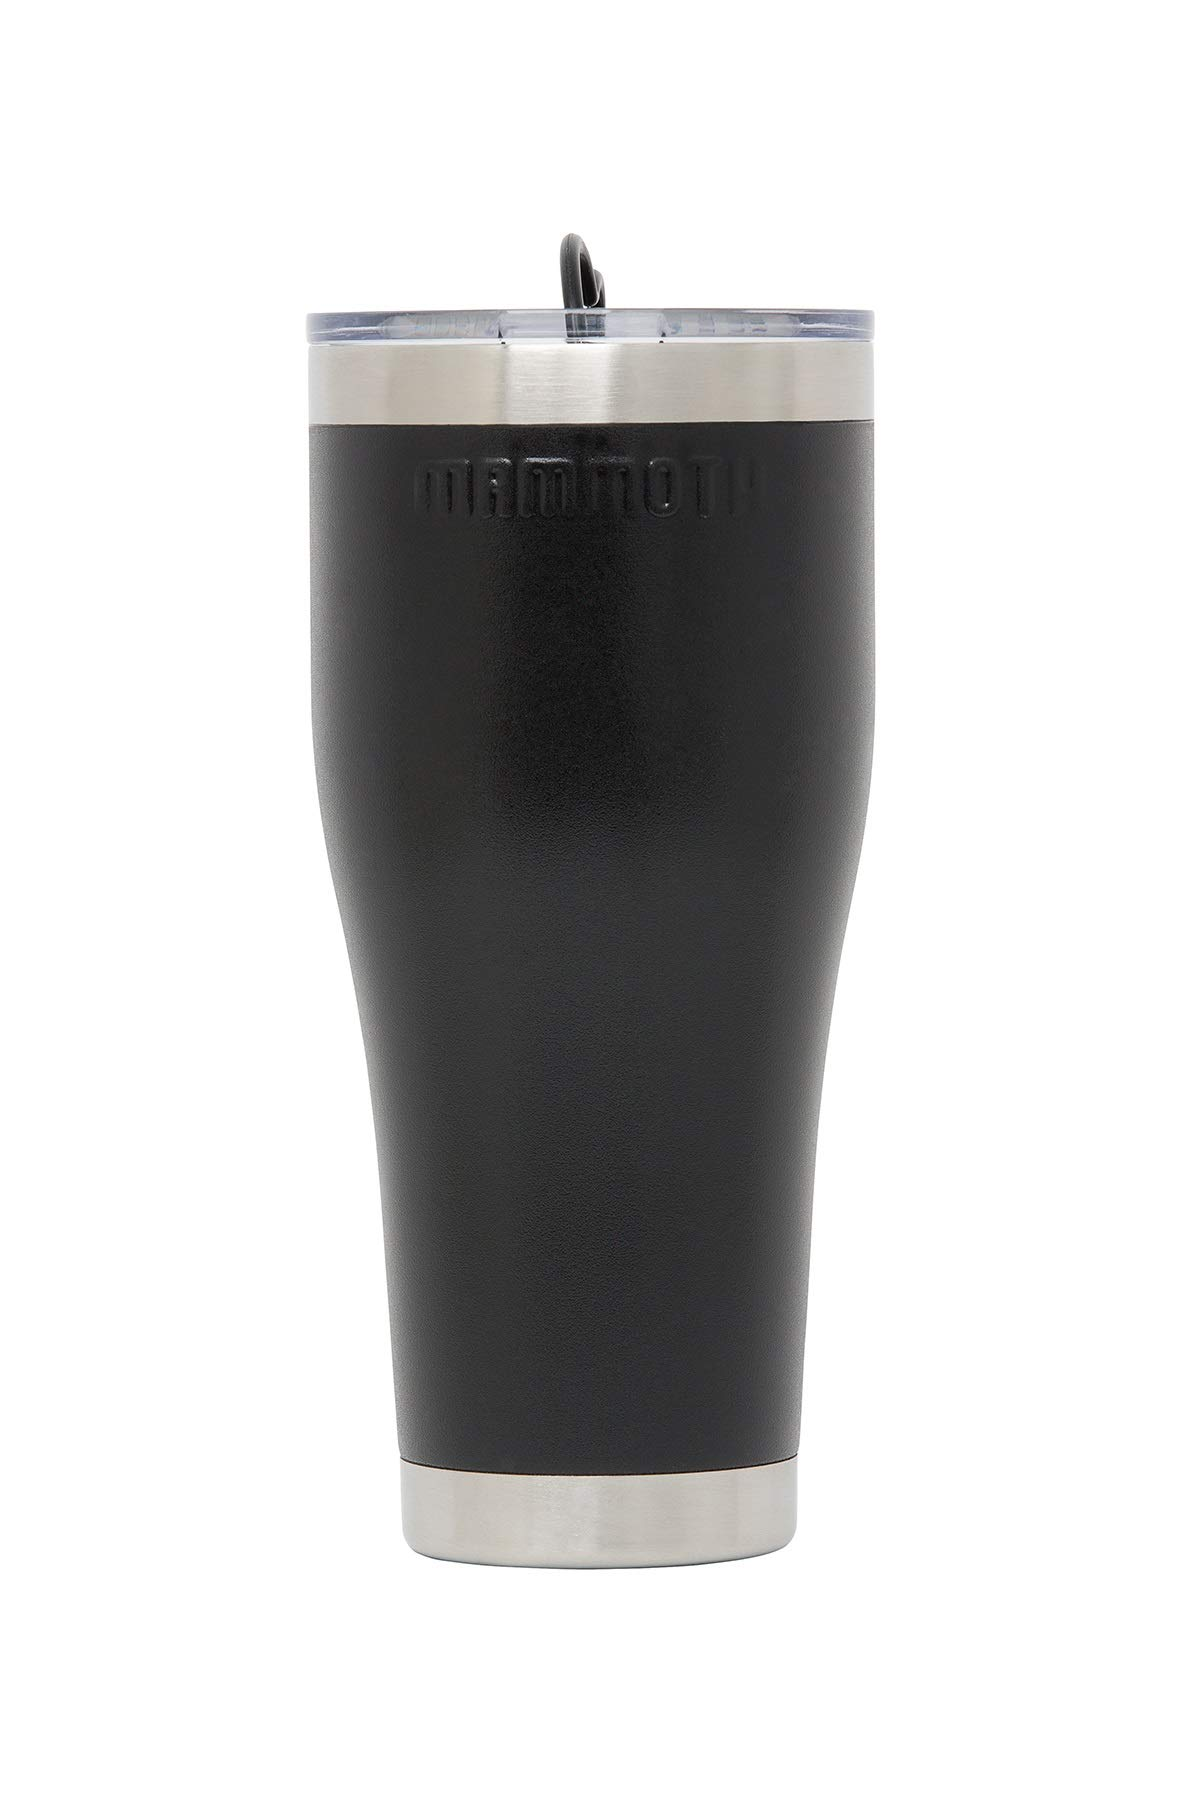 Mammoth Coolers Rover Tumbler Double Wall Vacuum Insulated Stainless Steel 30 oz